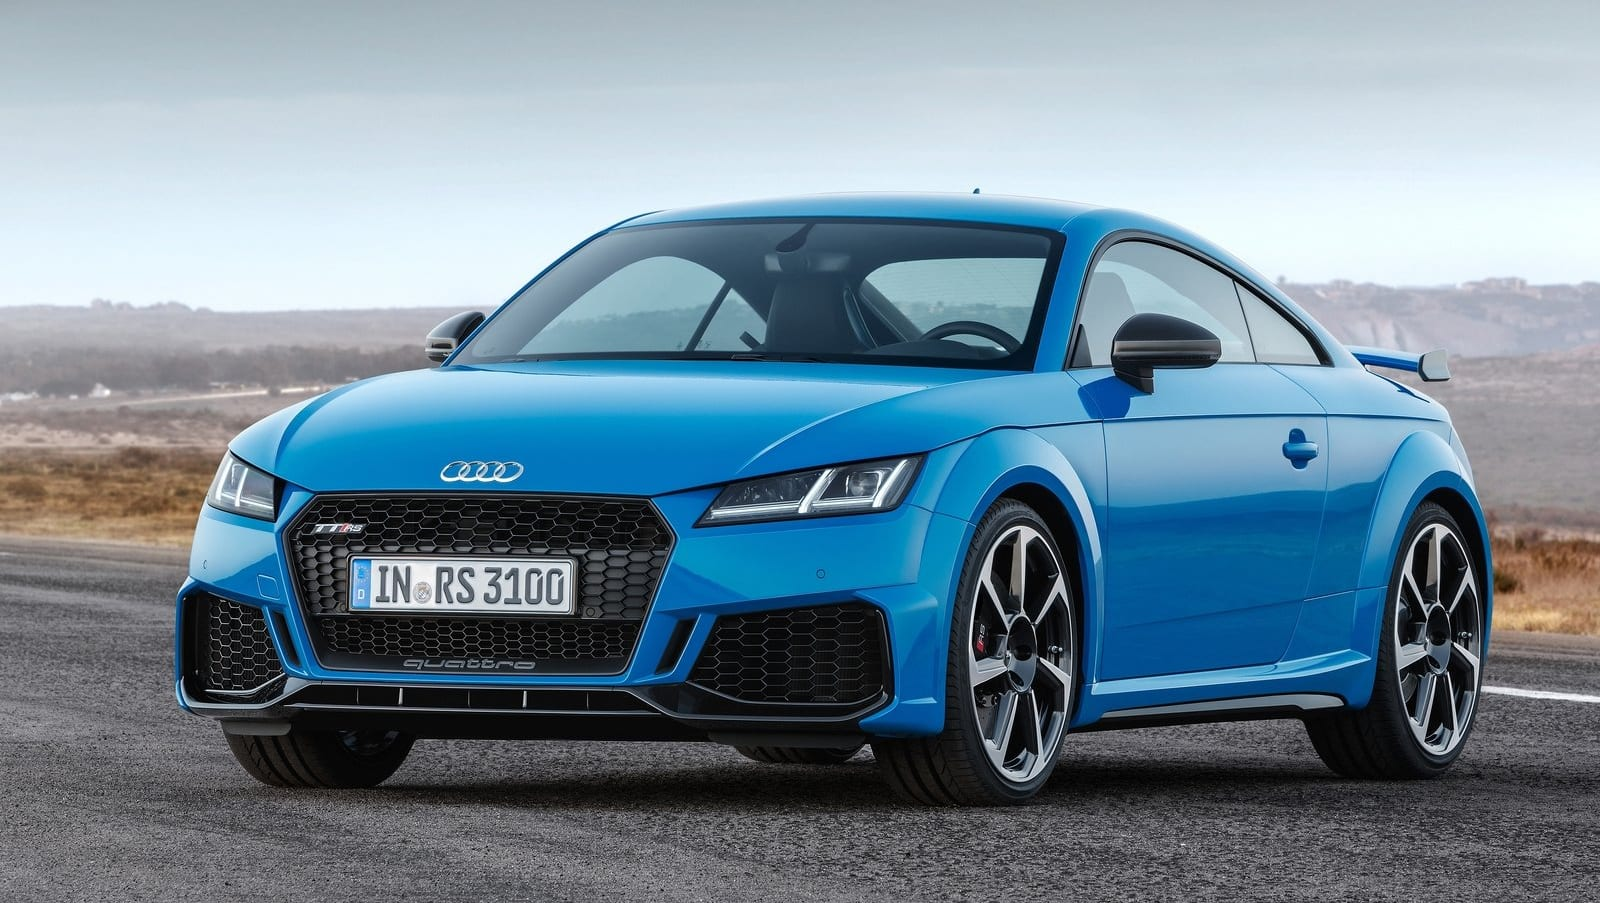 Audi will sacrifice TT to make way for electric sports car in massive brand shake-up